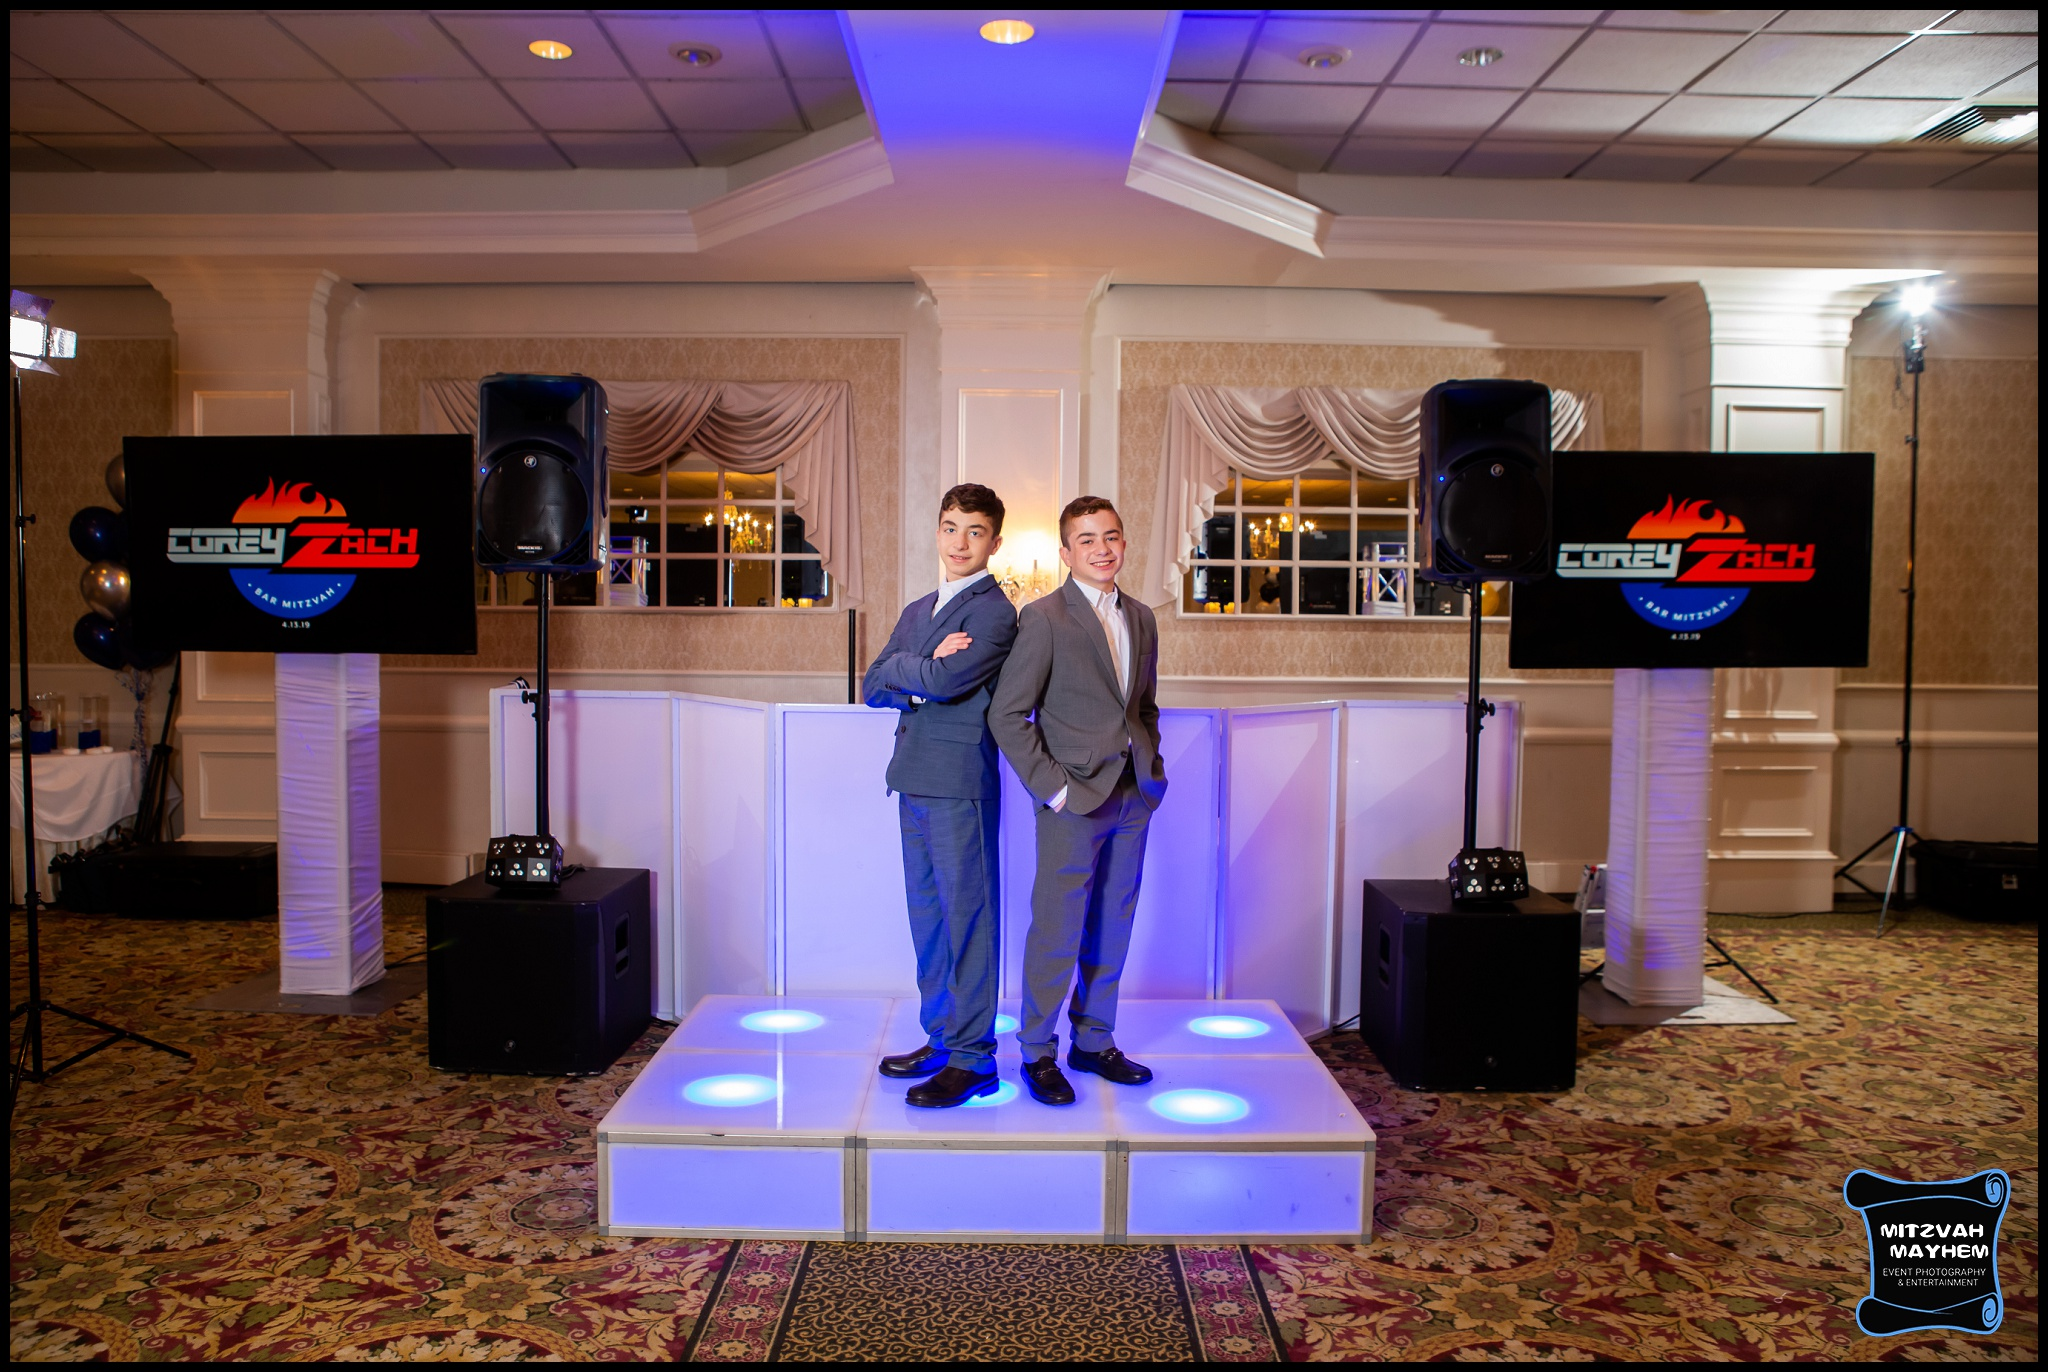 nj-mitzvah-photographer-bridgewater-manorl-13.JPG